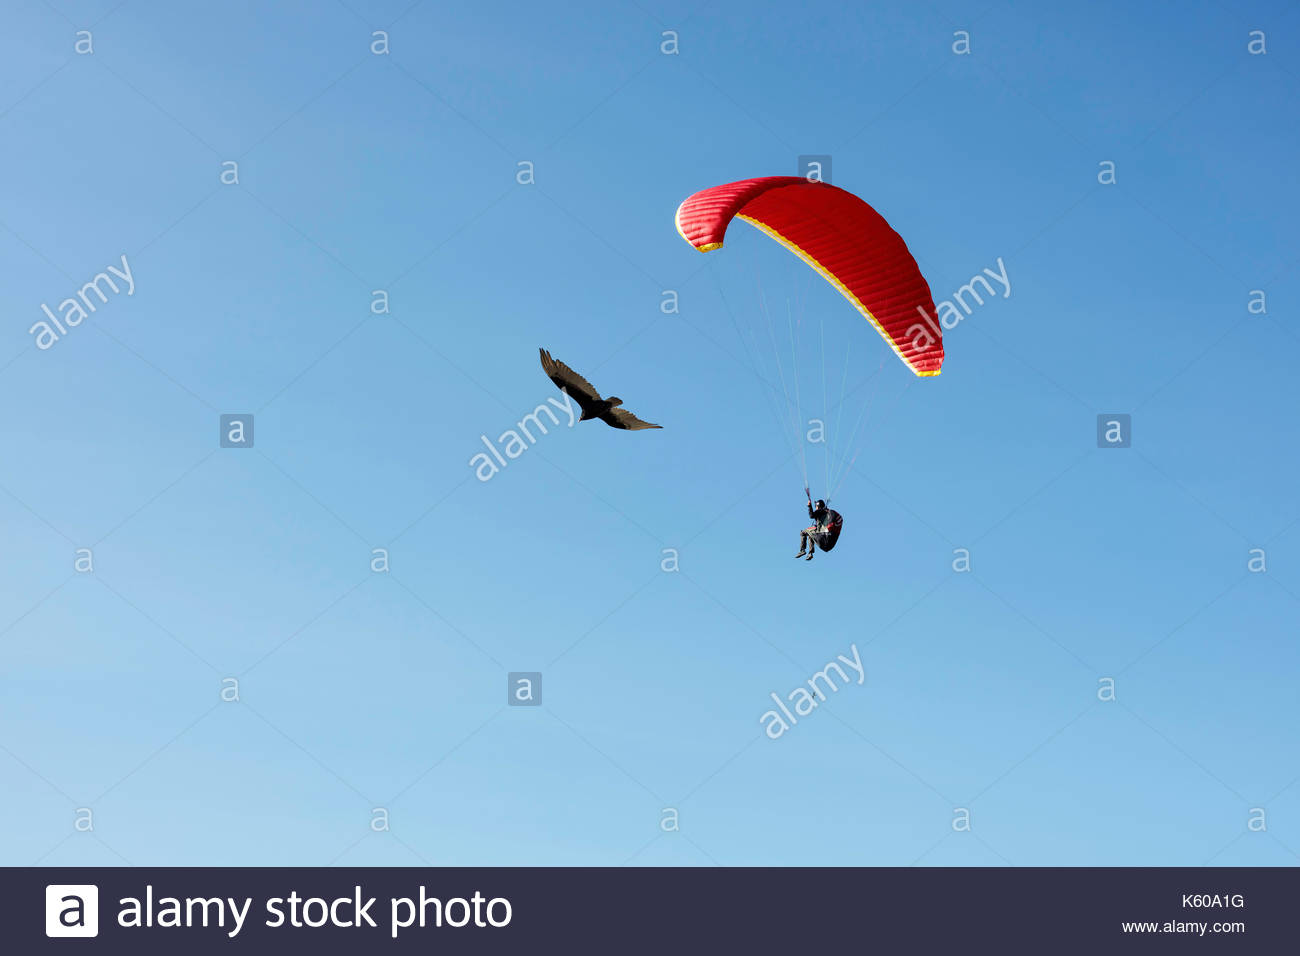 Turkey Vulture paragliding paraglider kiting flying soaring airfoil thermal wind Scarborough Bluffs Toronto Ontario - Stock Image